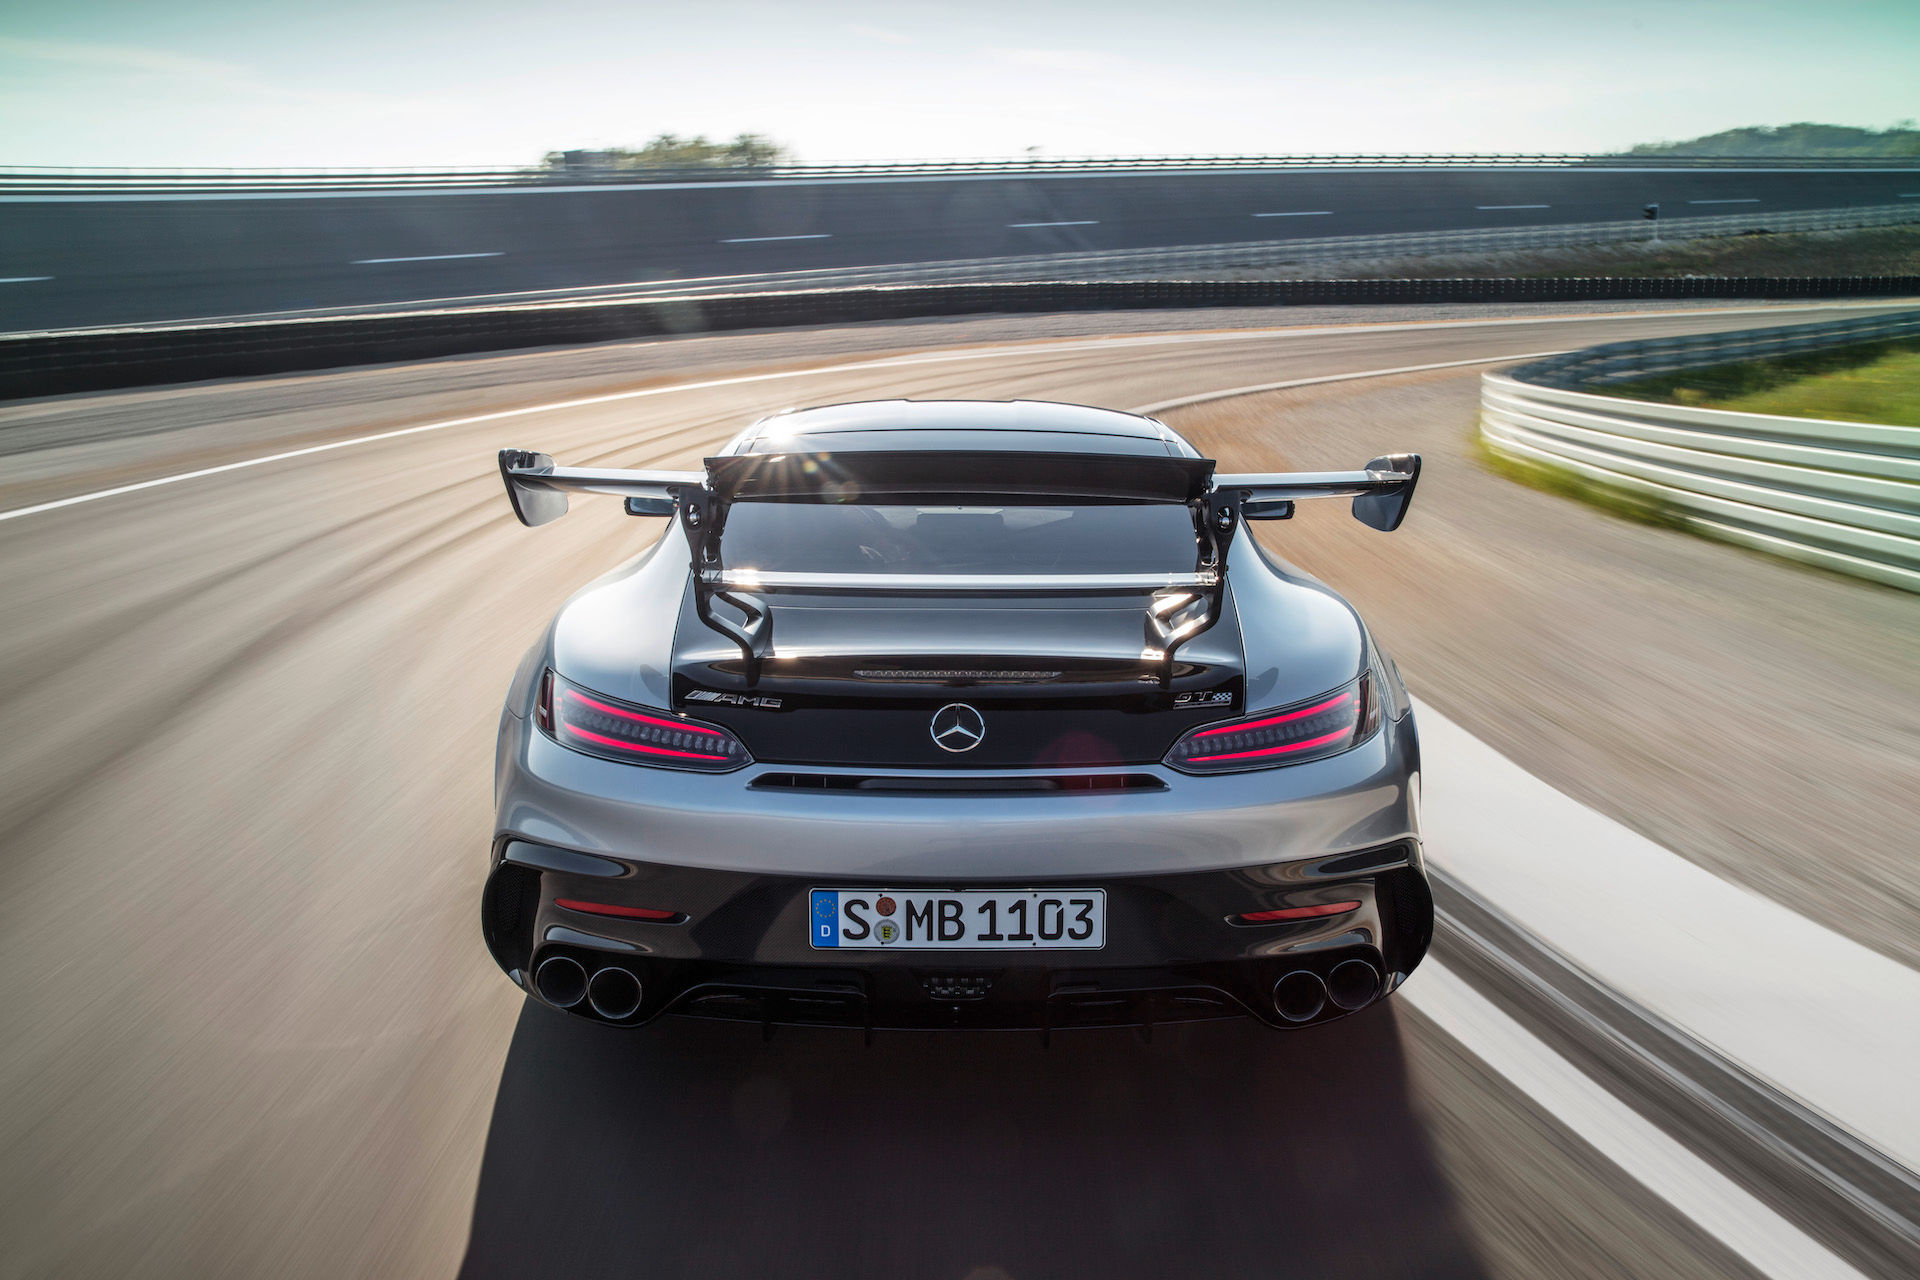 2021 Mercedes-Benz AMG GT Coupe rear view